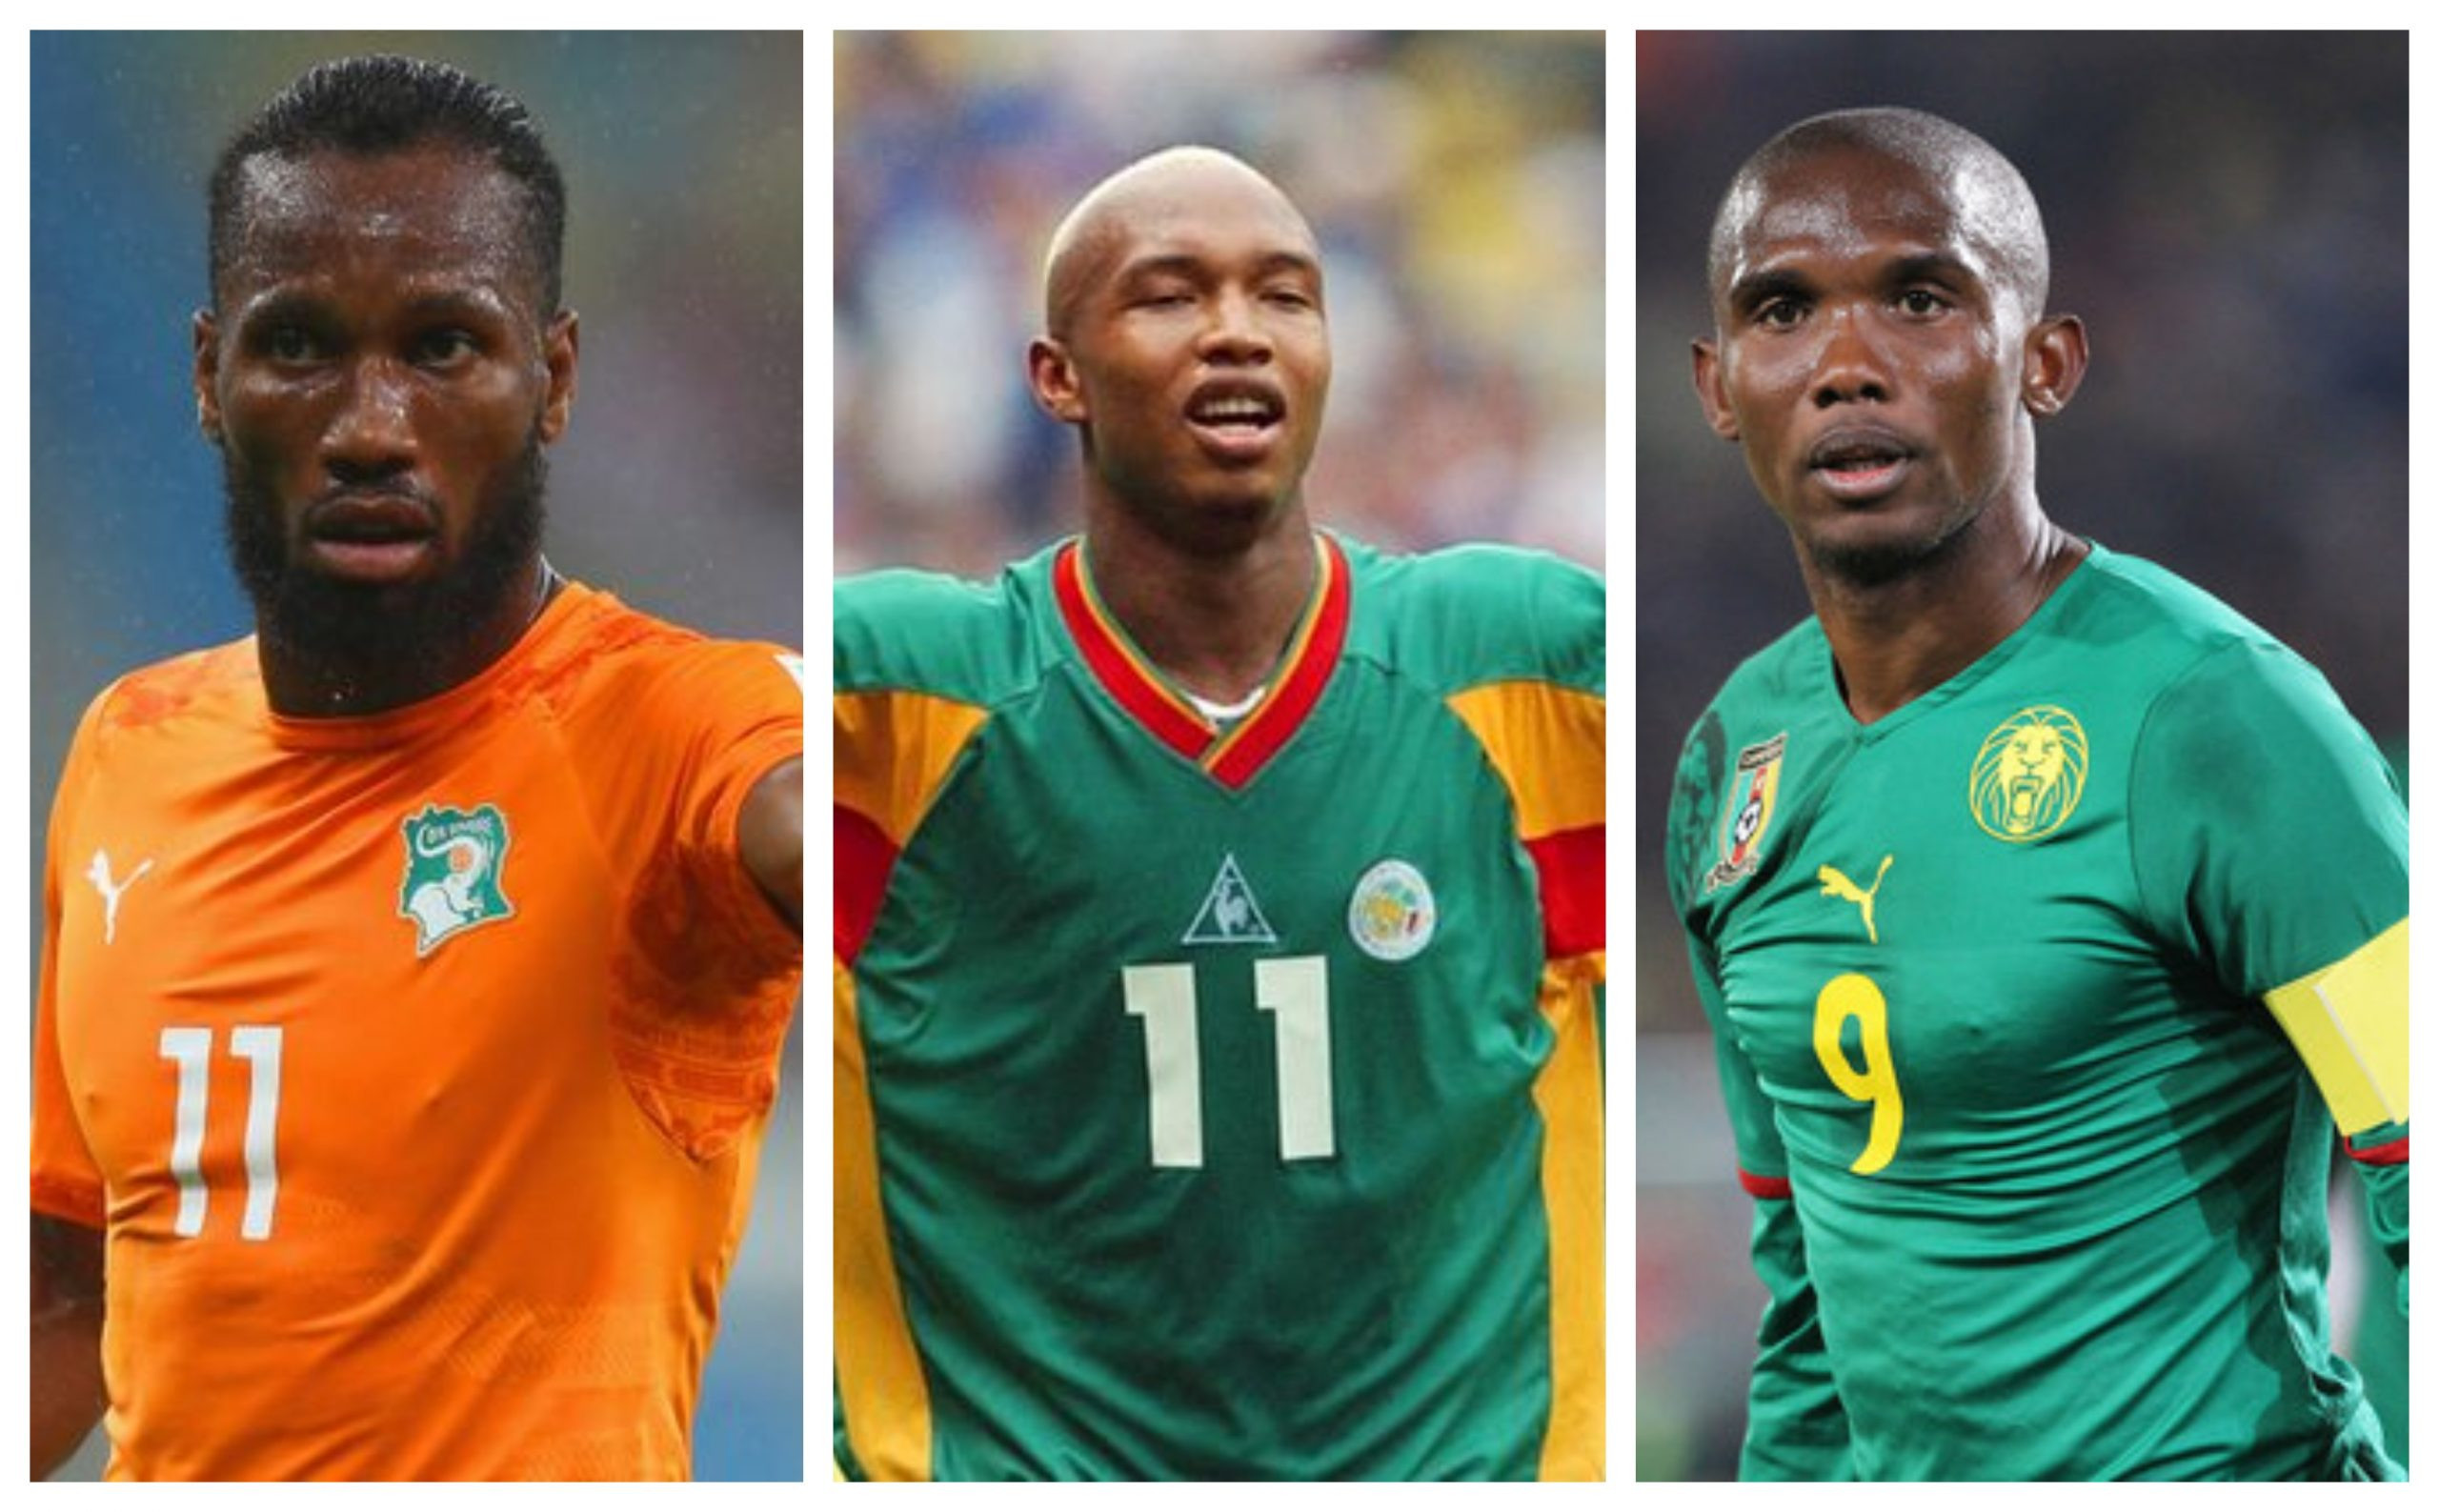 None of them can say that they were at my level or better' - Samuel Eto'o dismisses El-Hadji Diouf and Didier Drogba claims to be the greatest African player ever